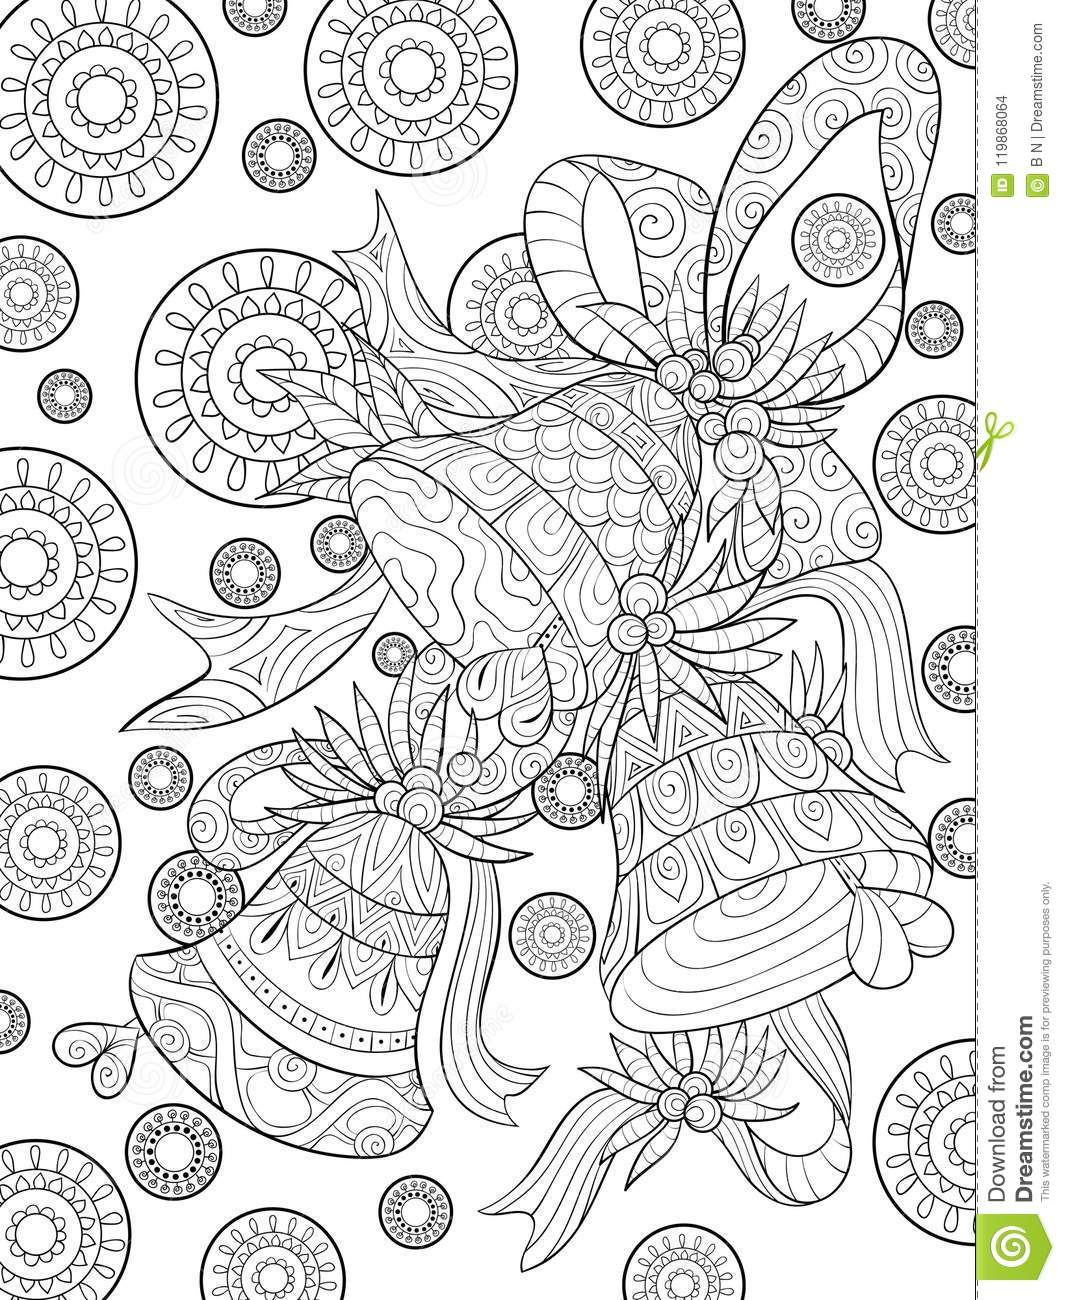 Download Adult Coloring Bookpage A Christmas Bells On The Background With Decoration Ornaments For